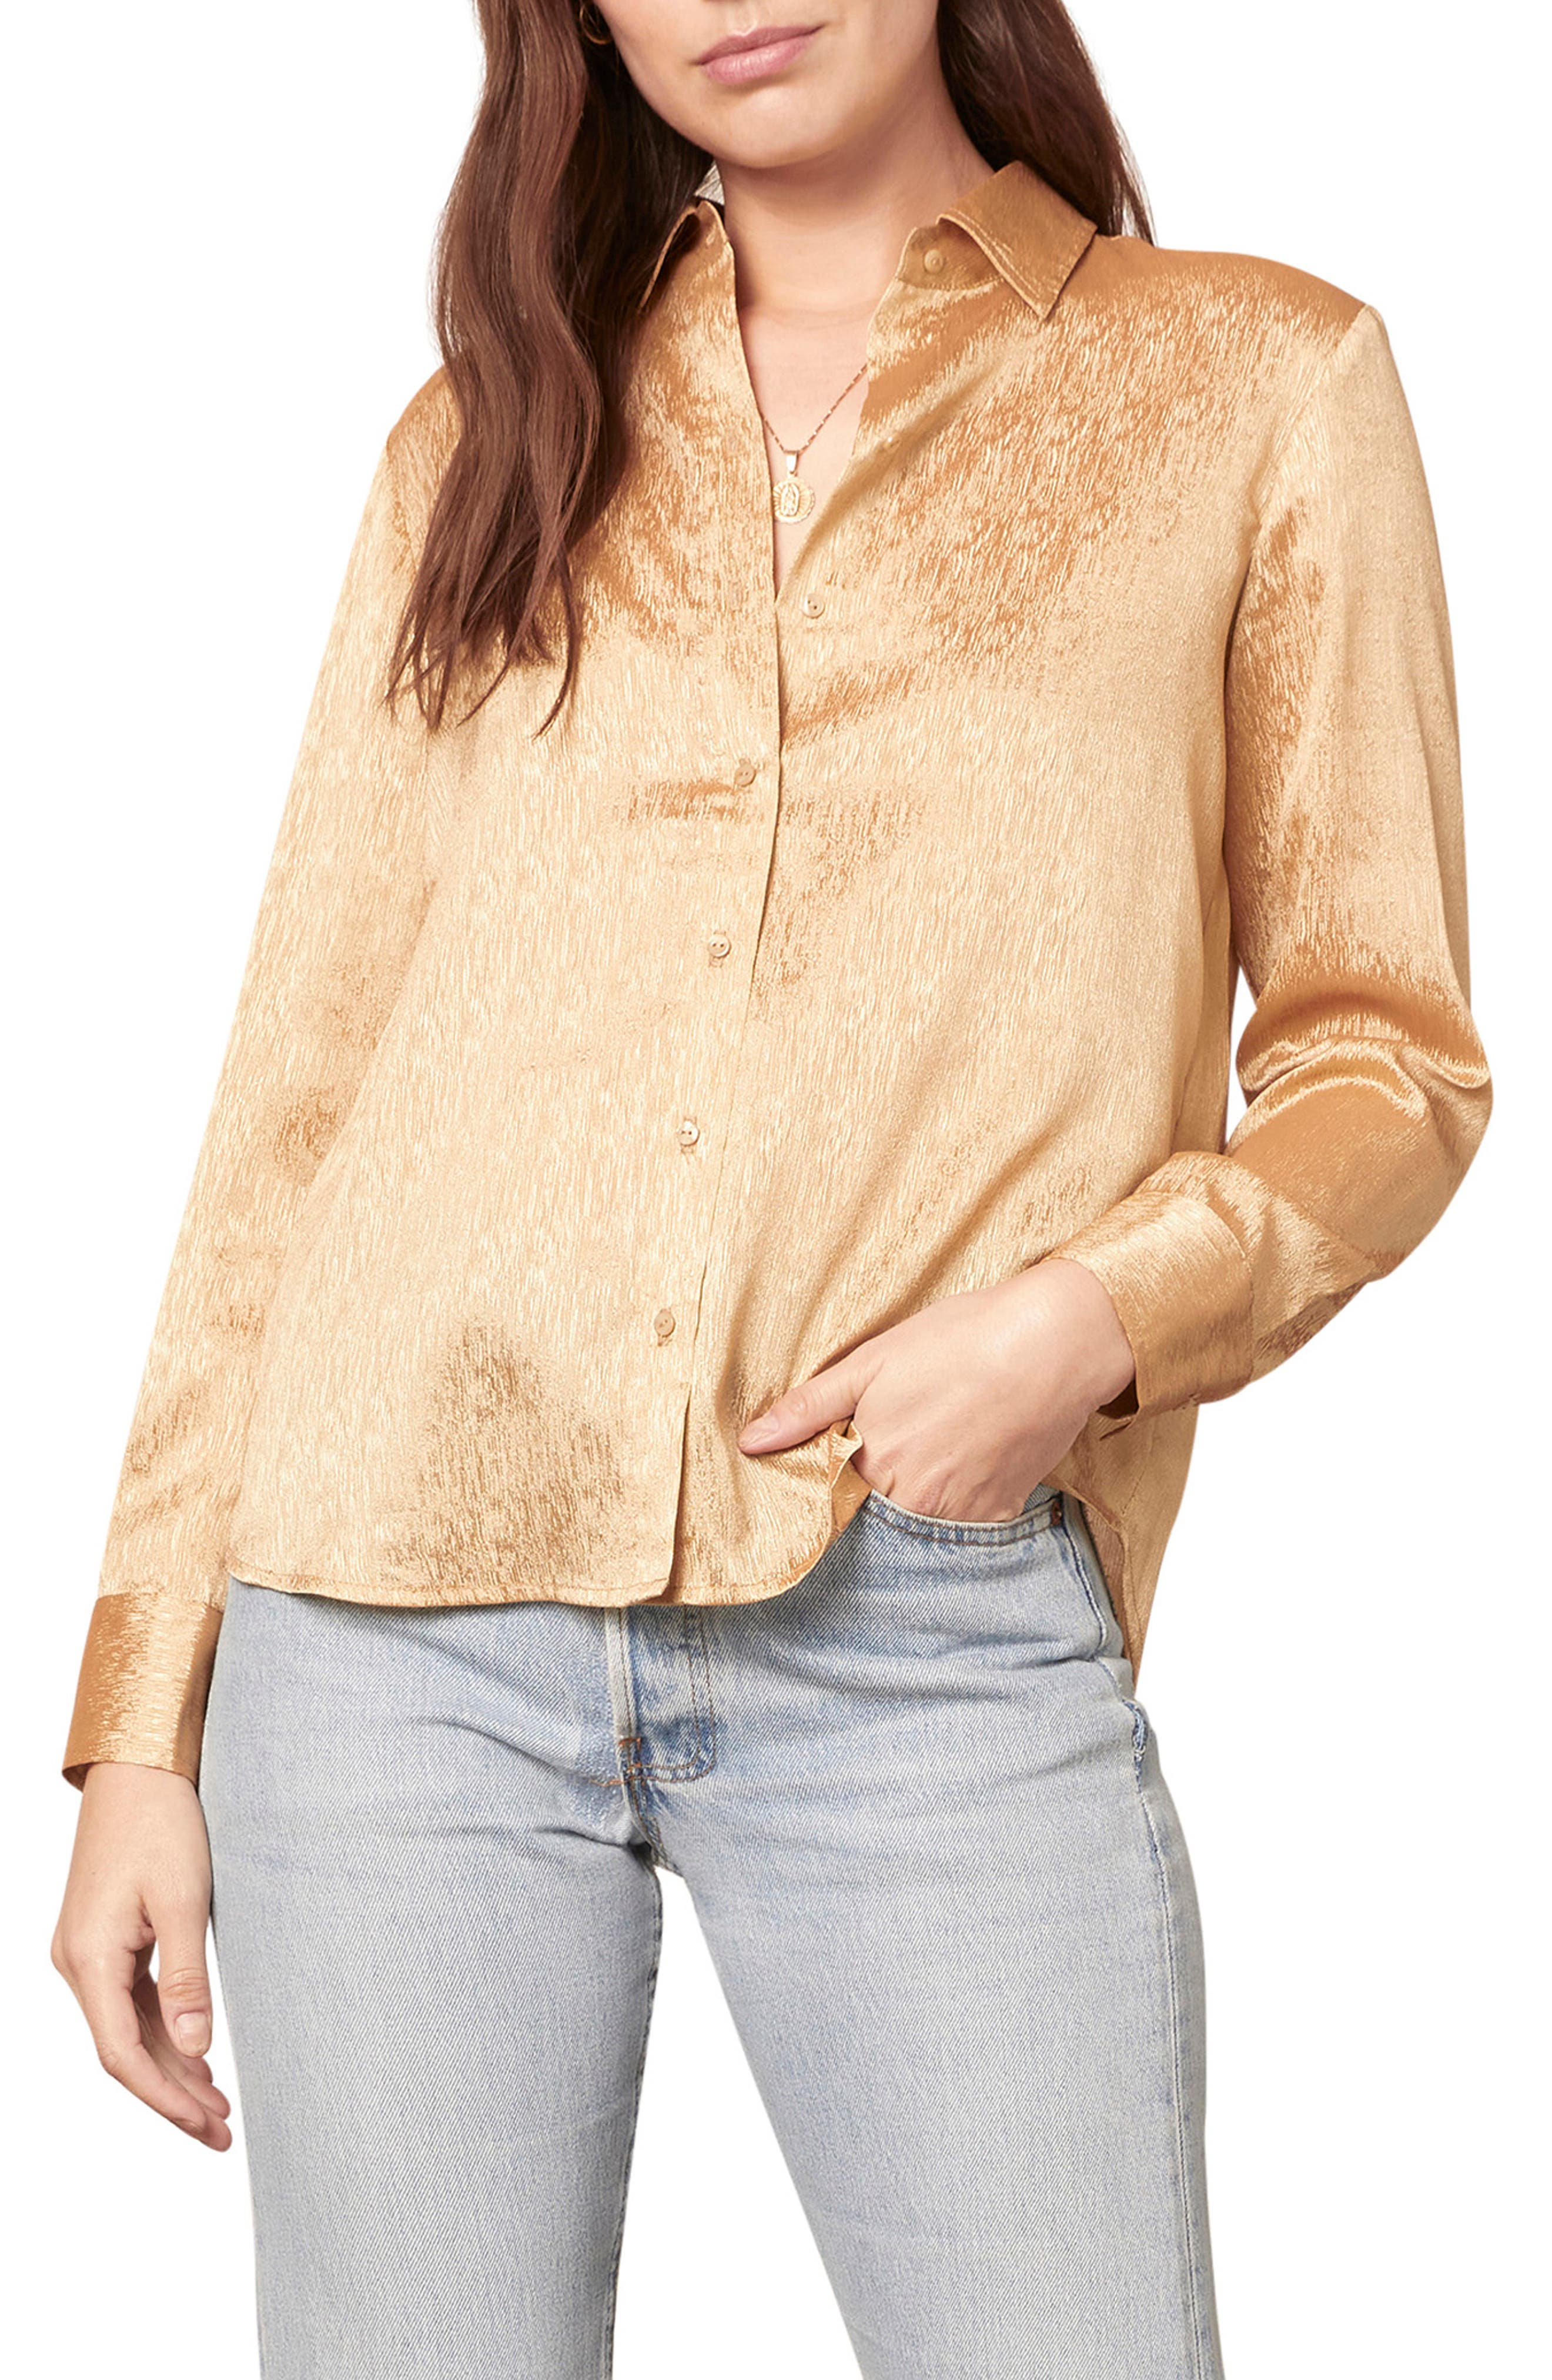 Asymmetrical Top Metallic Shirt V neck Top Unique Clothes Longsleeve Fitted Shirt Evening Tops Feminine Clothing ON SALE Gold Blouse